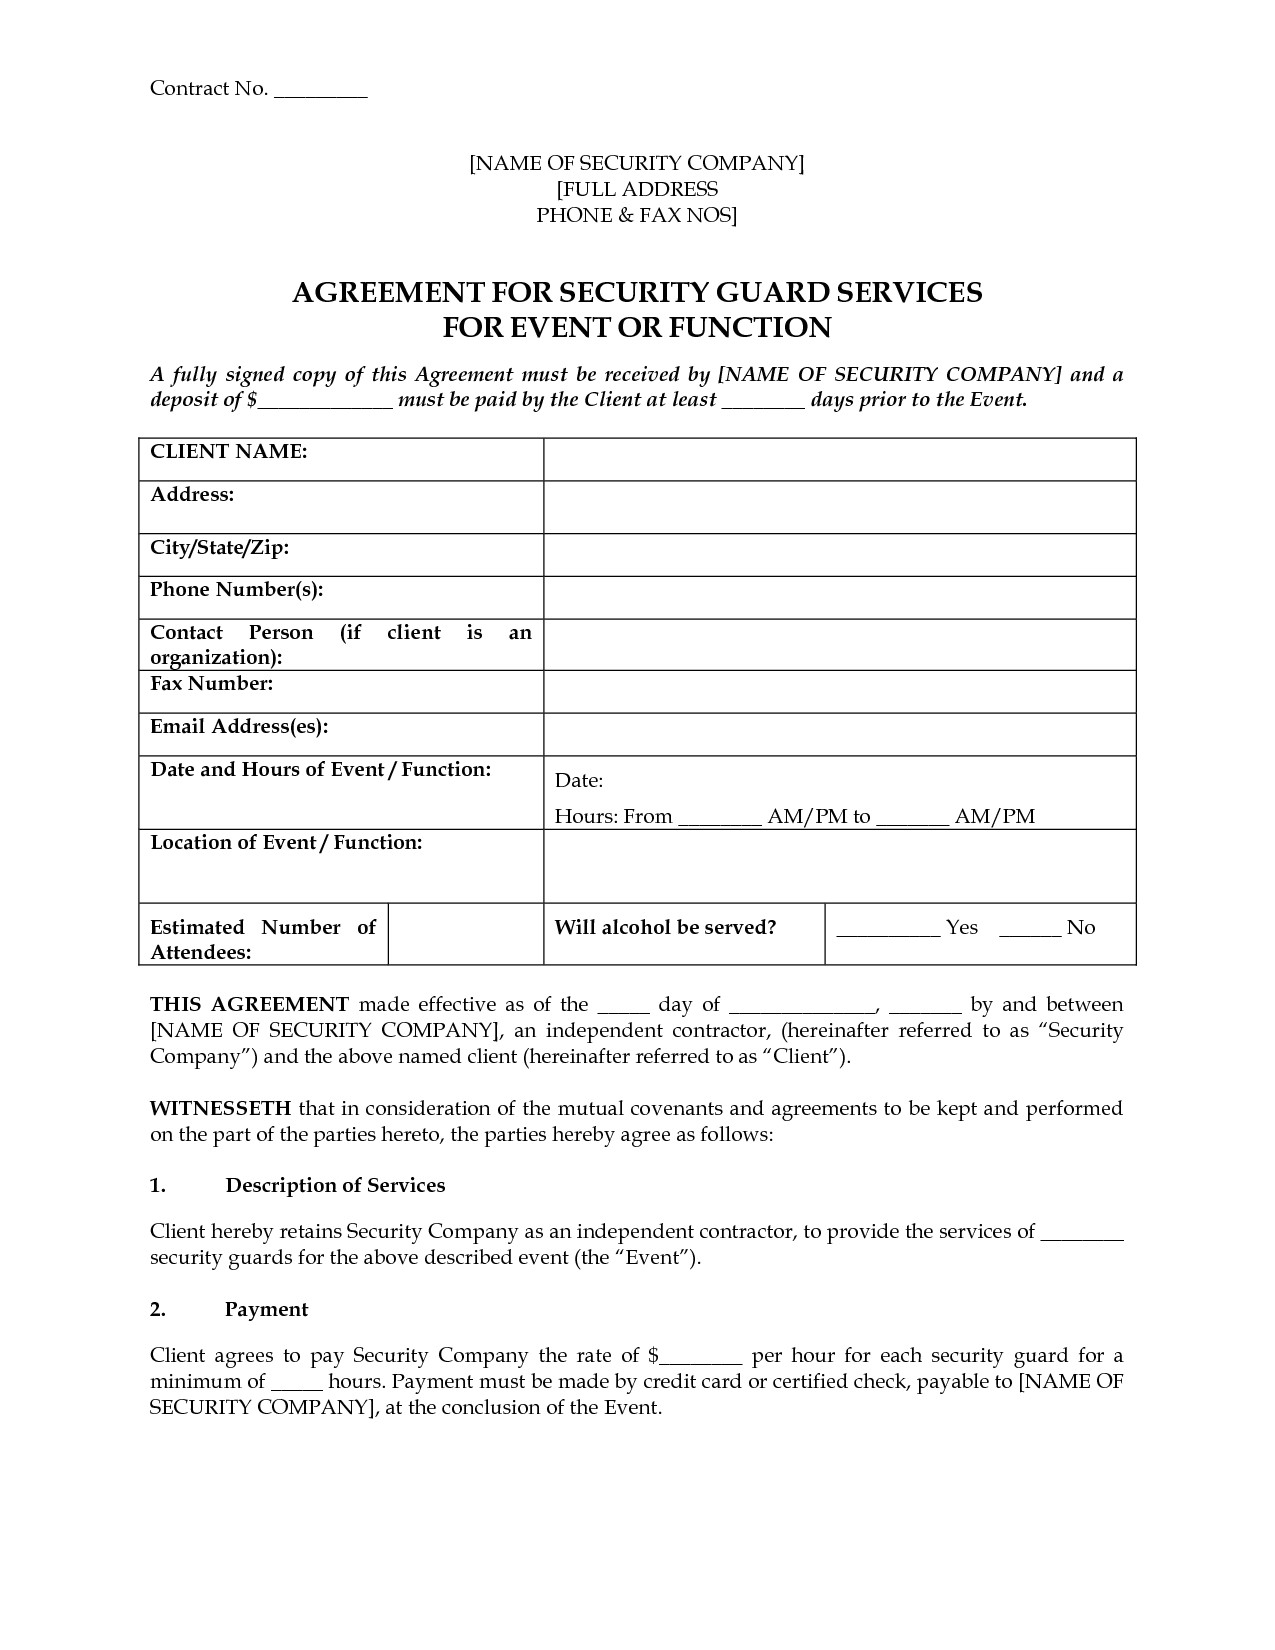 post event security guard contract agreement 642492